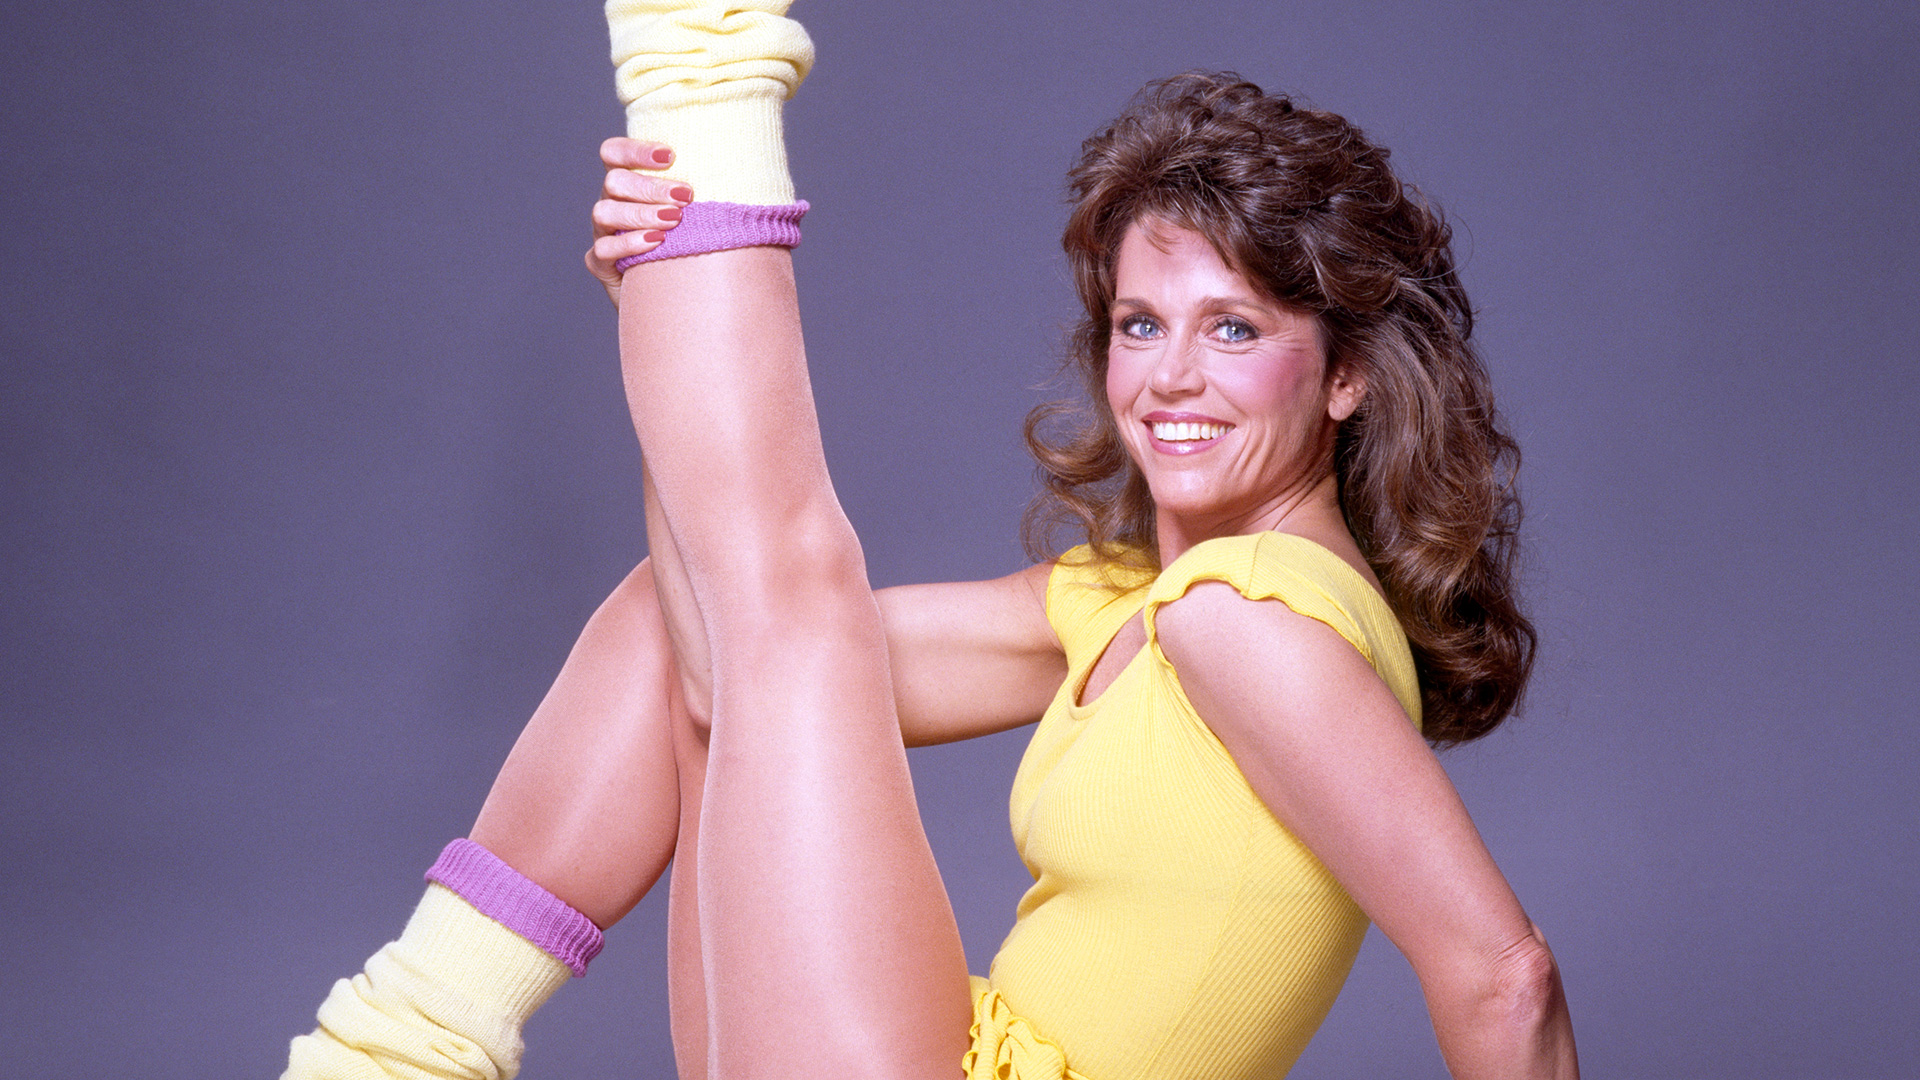 April  24, 1982: Jane Fonda Released Her First Workout Video